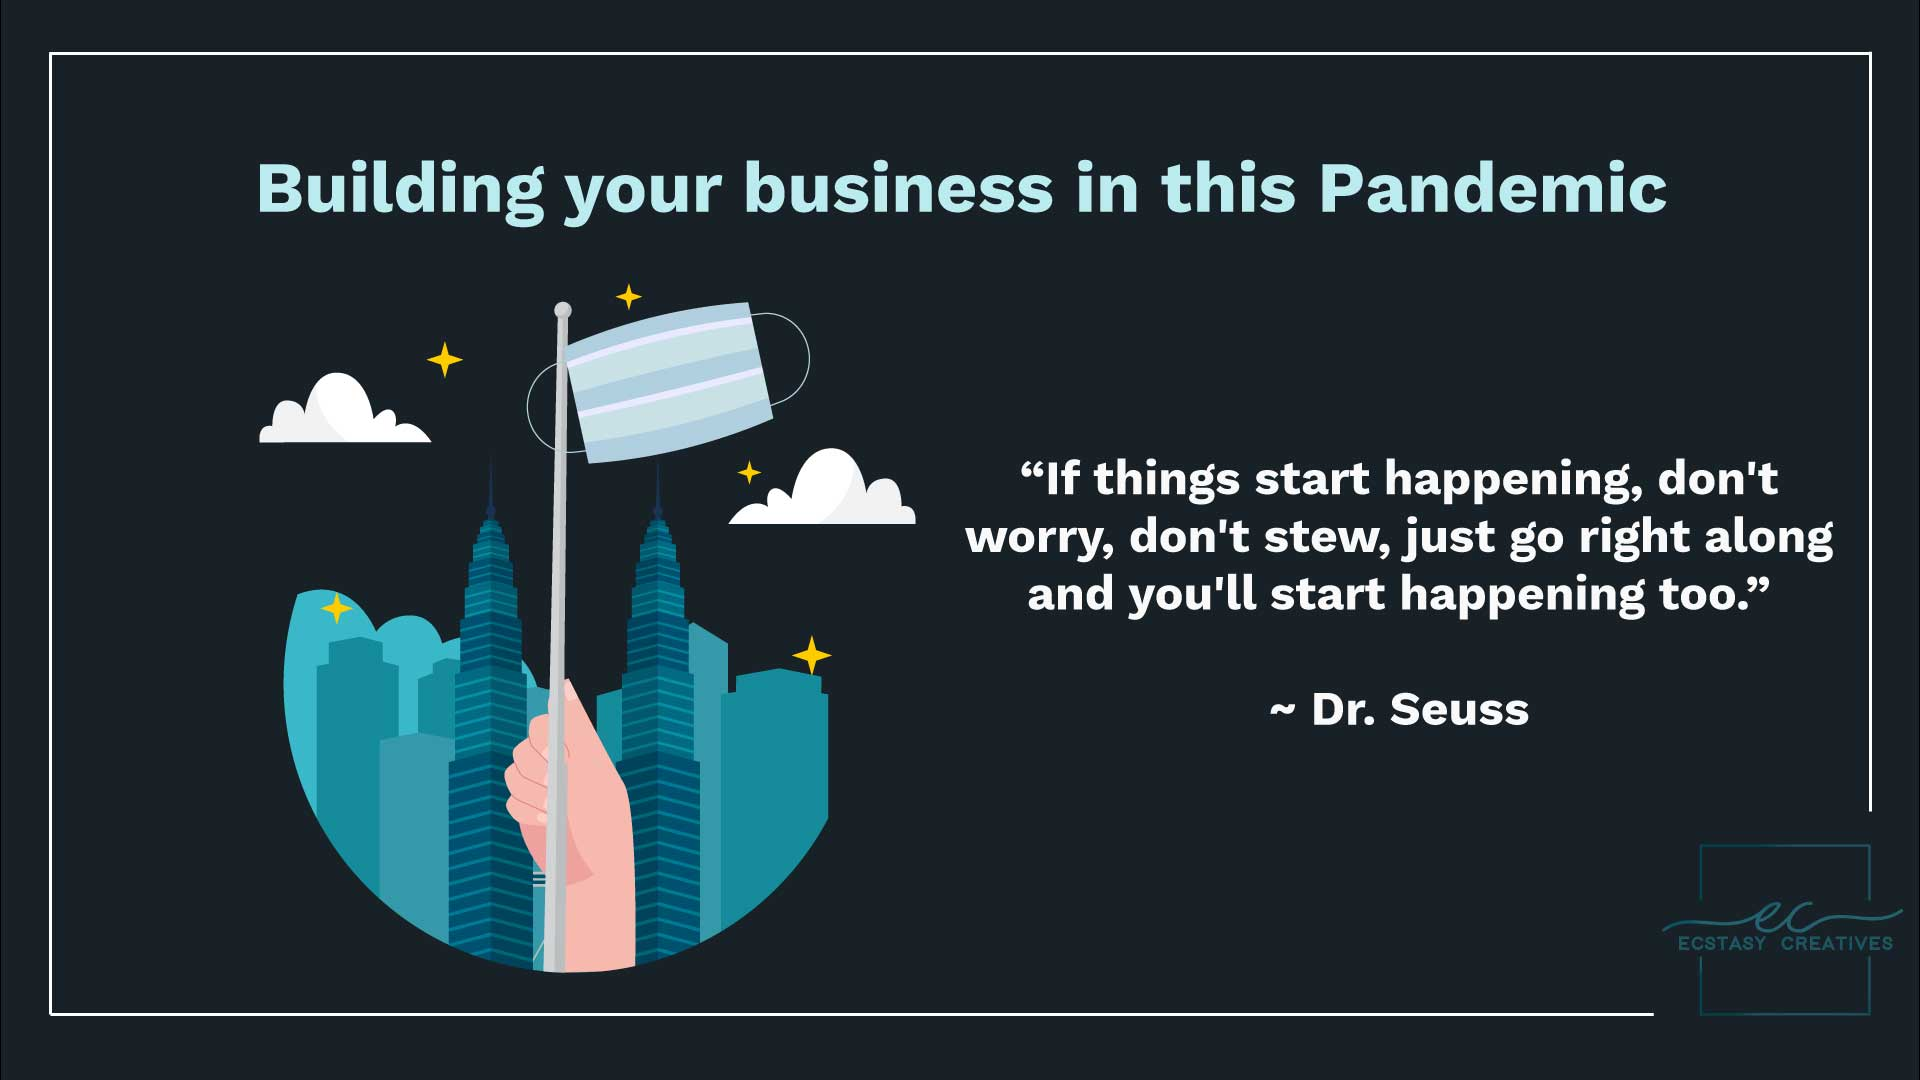 Building your business in this Pandemic